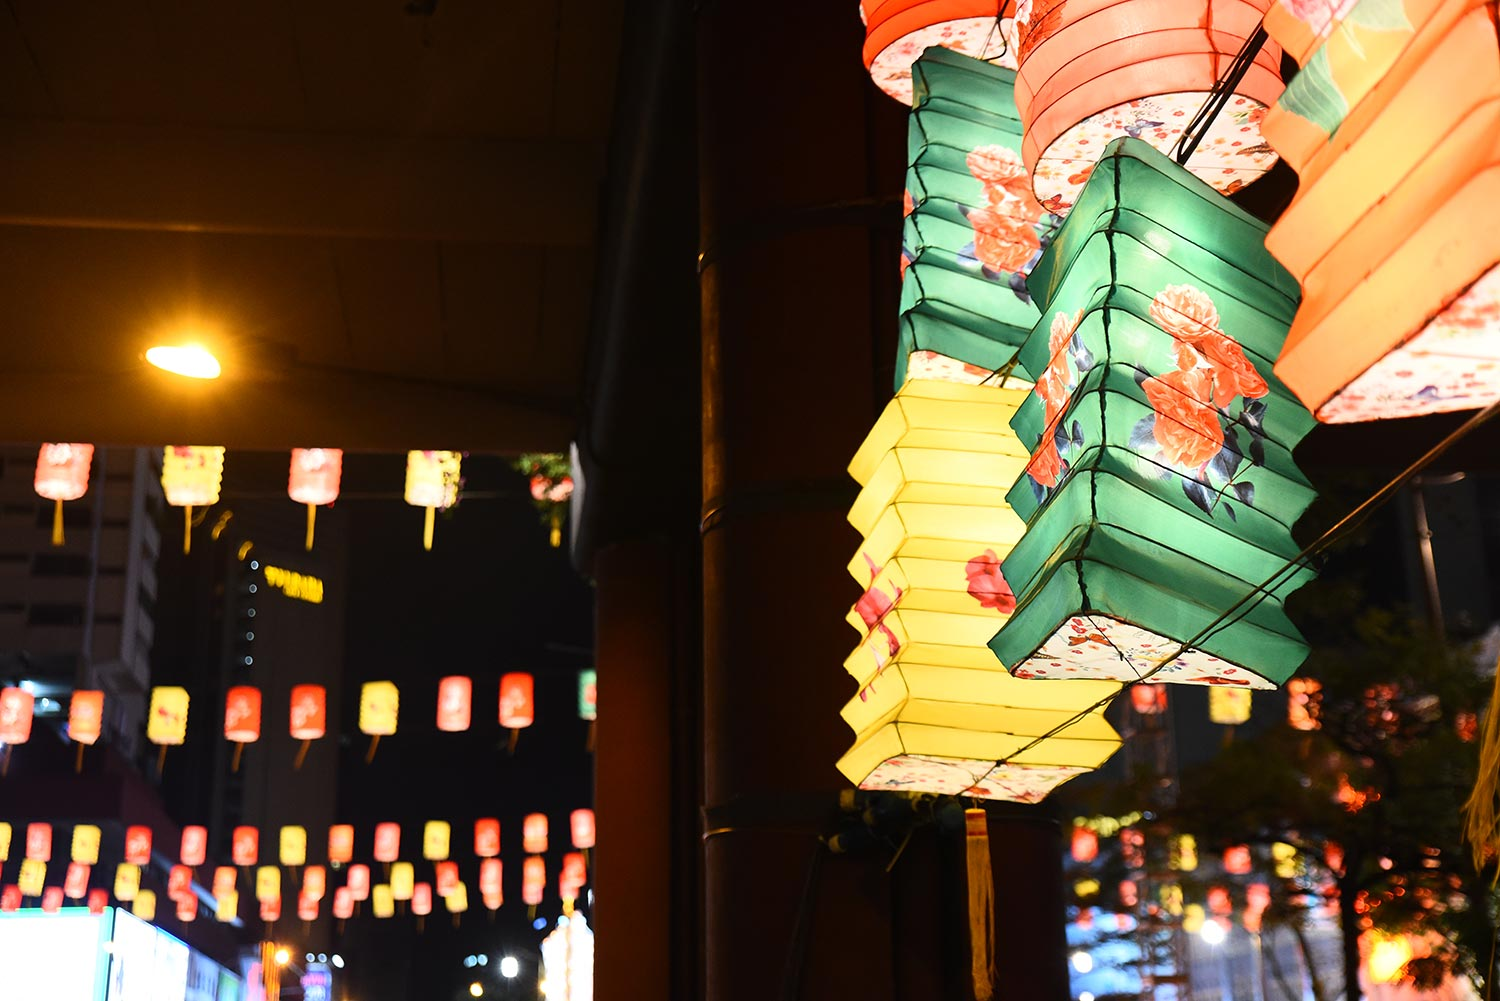 Reminiscing the Chinese Heritage at Chinatown Mid-Autumn Festival 2018